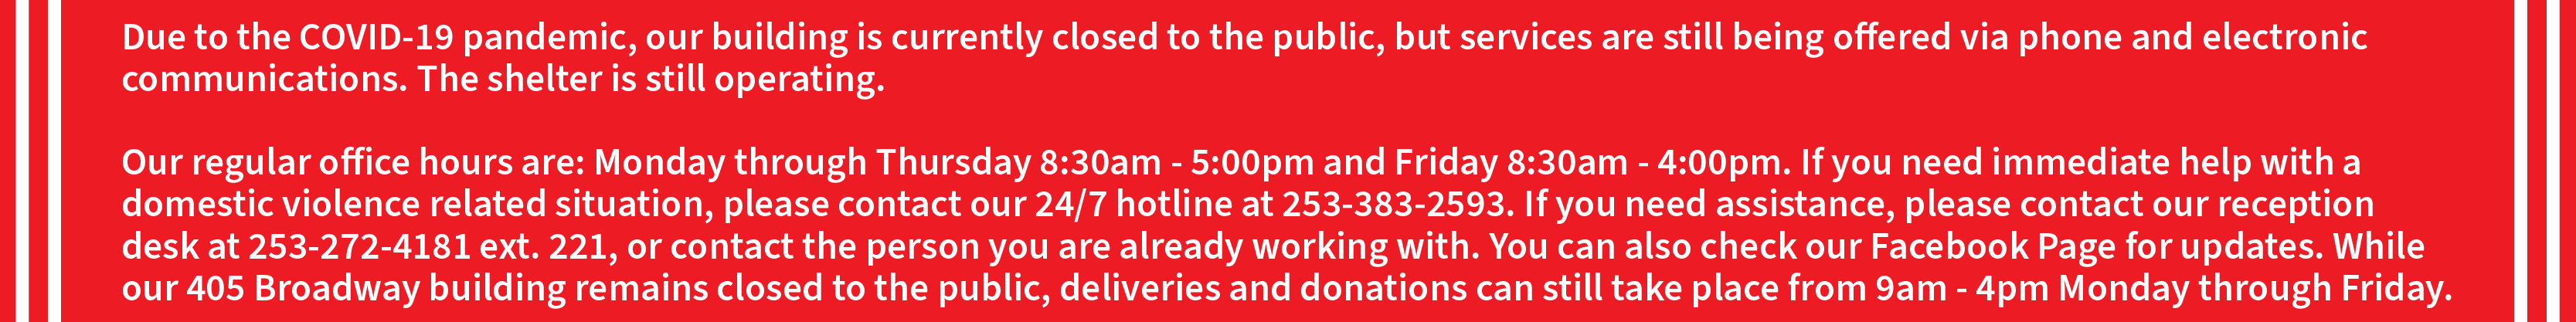 Due to the COVID-19 pandemic, our building is currently closed to the public, but services are still being offered via phone and electronic communications. The shelter is still operating.   If you need assistance, please contact our reception desk at 253-272-4181 ext. 221, or contact the person you are already working with. You can also check our Facebook Page for updates.   Our regular office hours are: Monday through Thursday 8:30am - 5:00pm and Friday 8:30am - 4:00pm. As always, if you need immediate help with a domestic violence related situation, please contact our 24/7 hotline at 253-383-2593. While our 405 Broadway building remains closed to the public, deliveries and donations can still take place from 9am - 4pm Monday through Friday.   Thank you for understanding as we work to keep each other and our community safe.